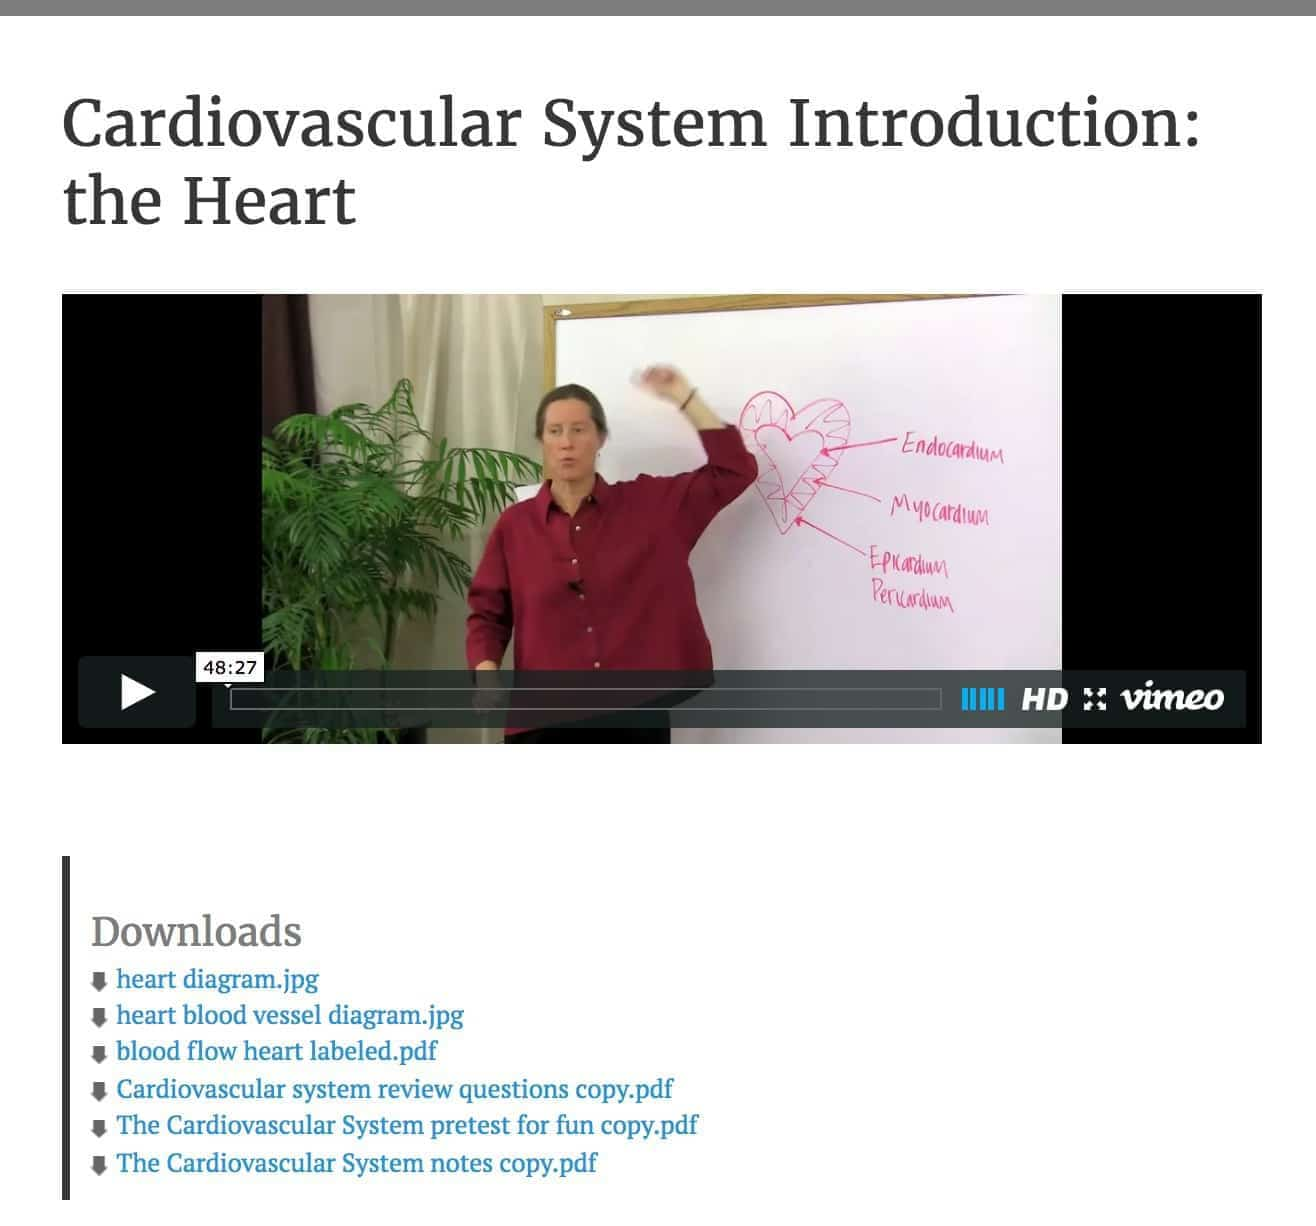 Online Anatomy And Physiology Heartstone Center For Earth Essentials Labeled Diagram Of Heart Picture Is Part Today We Give Lesson Preview Includes Downloads Diagrams Tests Ceus